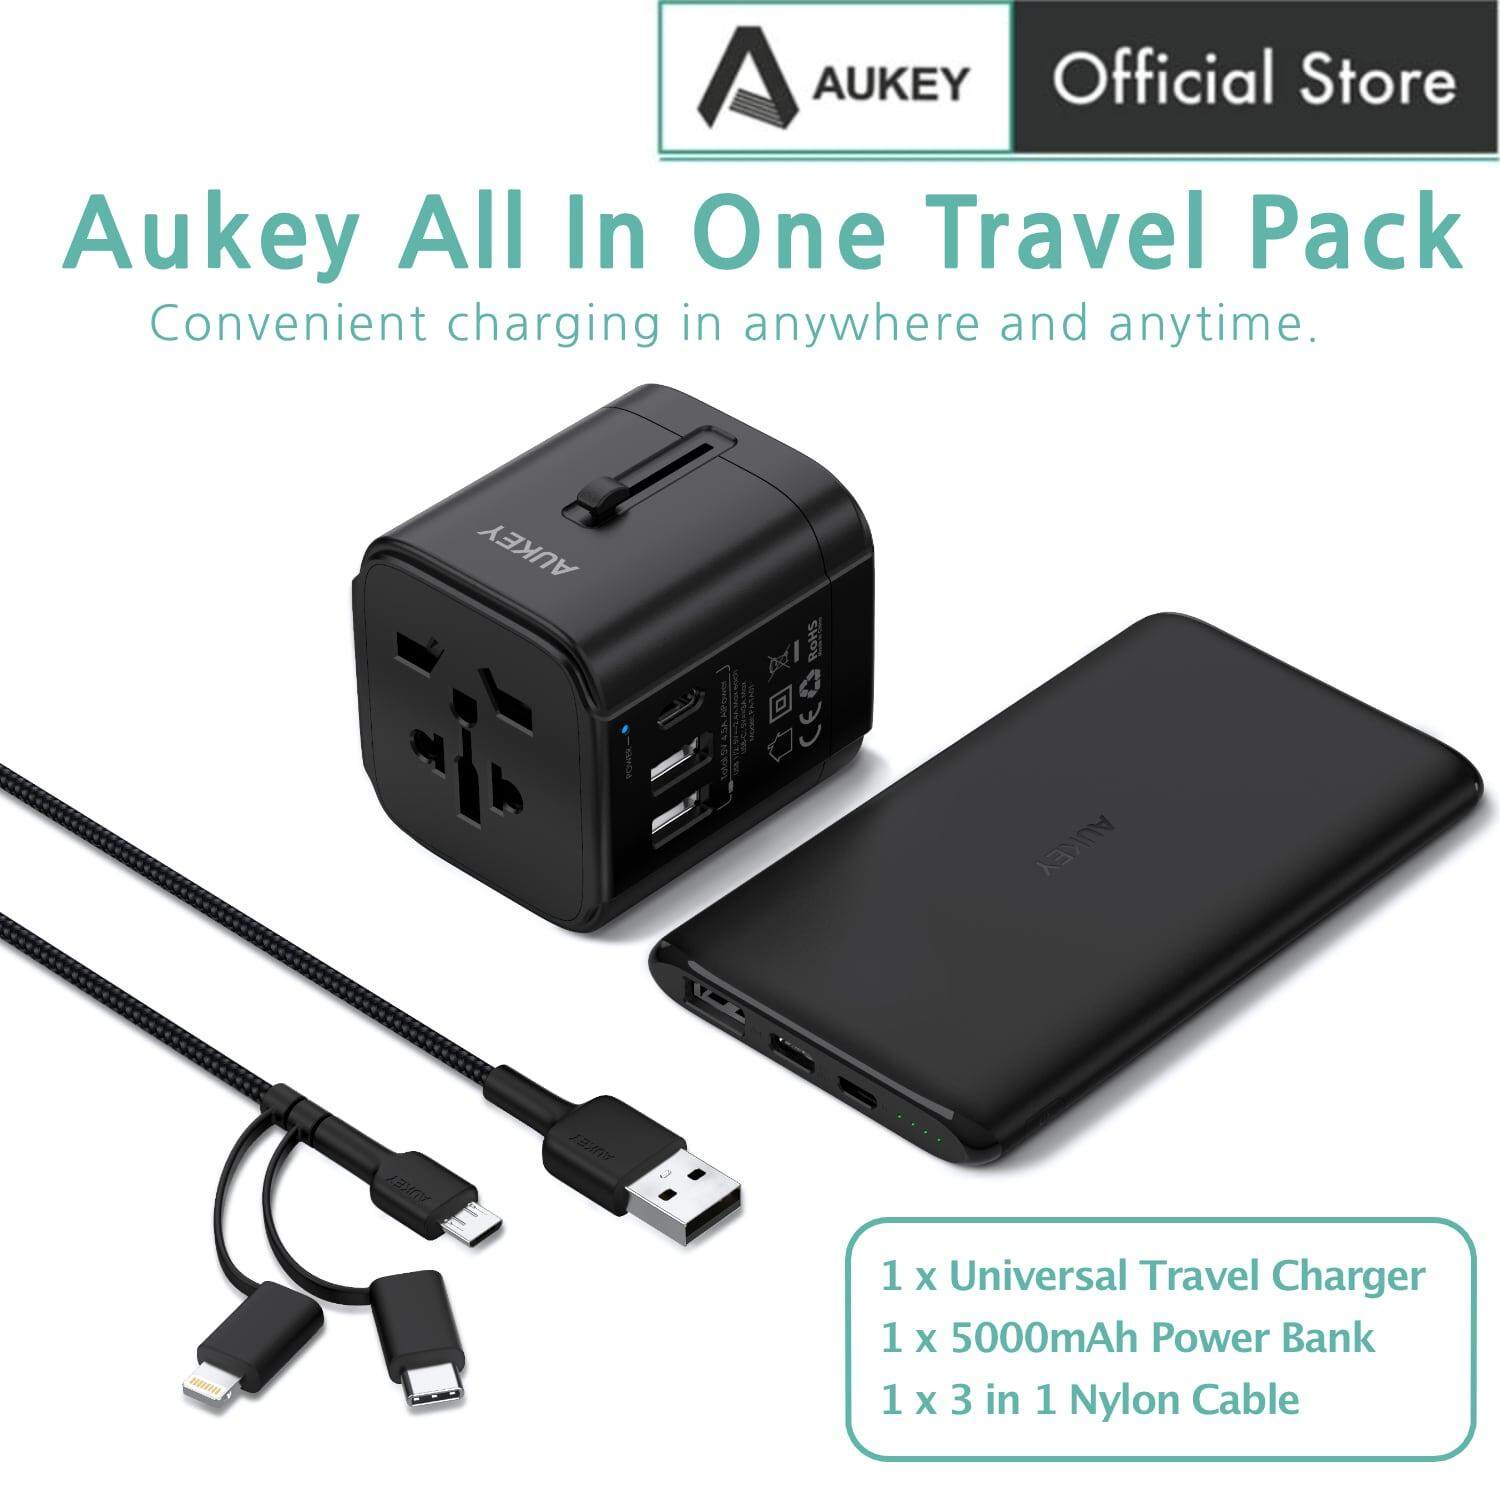 [12.12 Crazy Brand Mega Offers]Aukey TA-1 3 In 1 Travel Kit Pack With USB C Power Bank, Travel Charger Adapter, 3 In 1 Micro USB C Lightning Cable